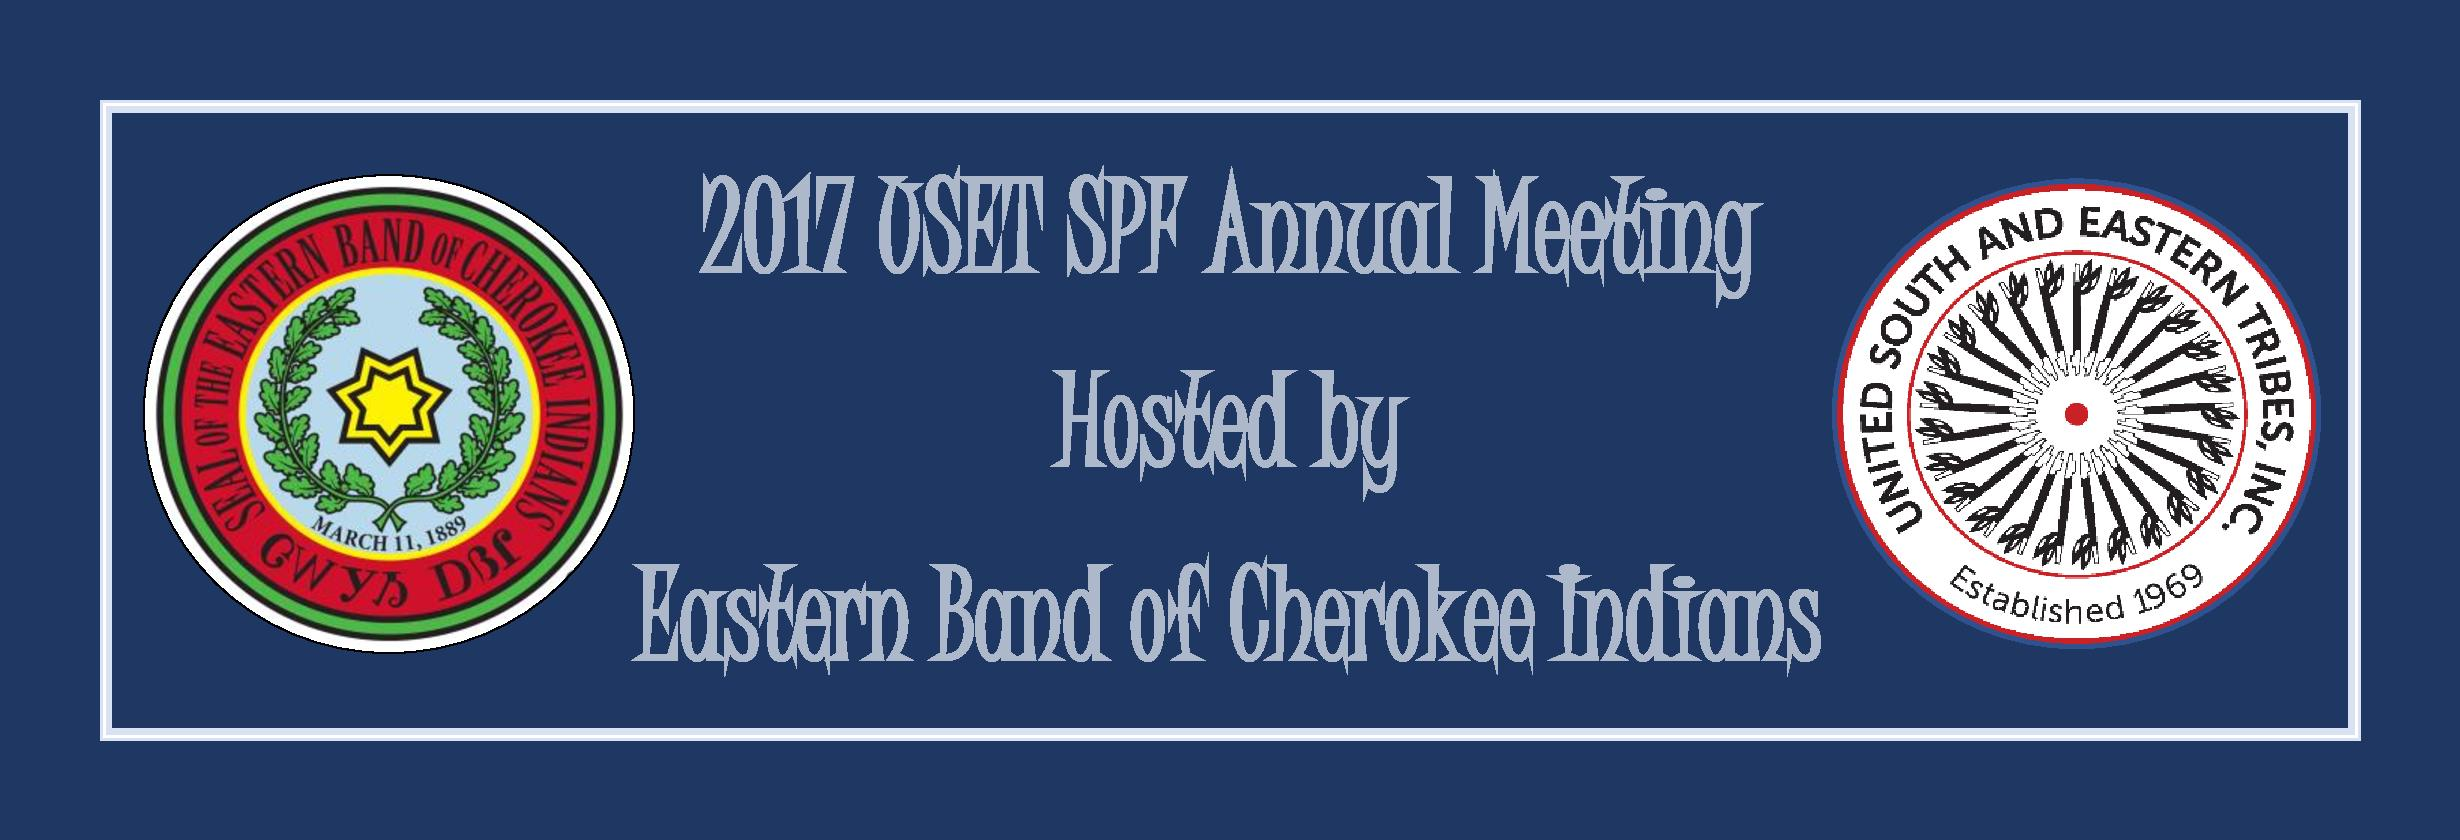 2017 USET SPF Annual Meeting